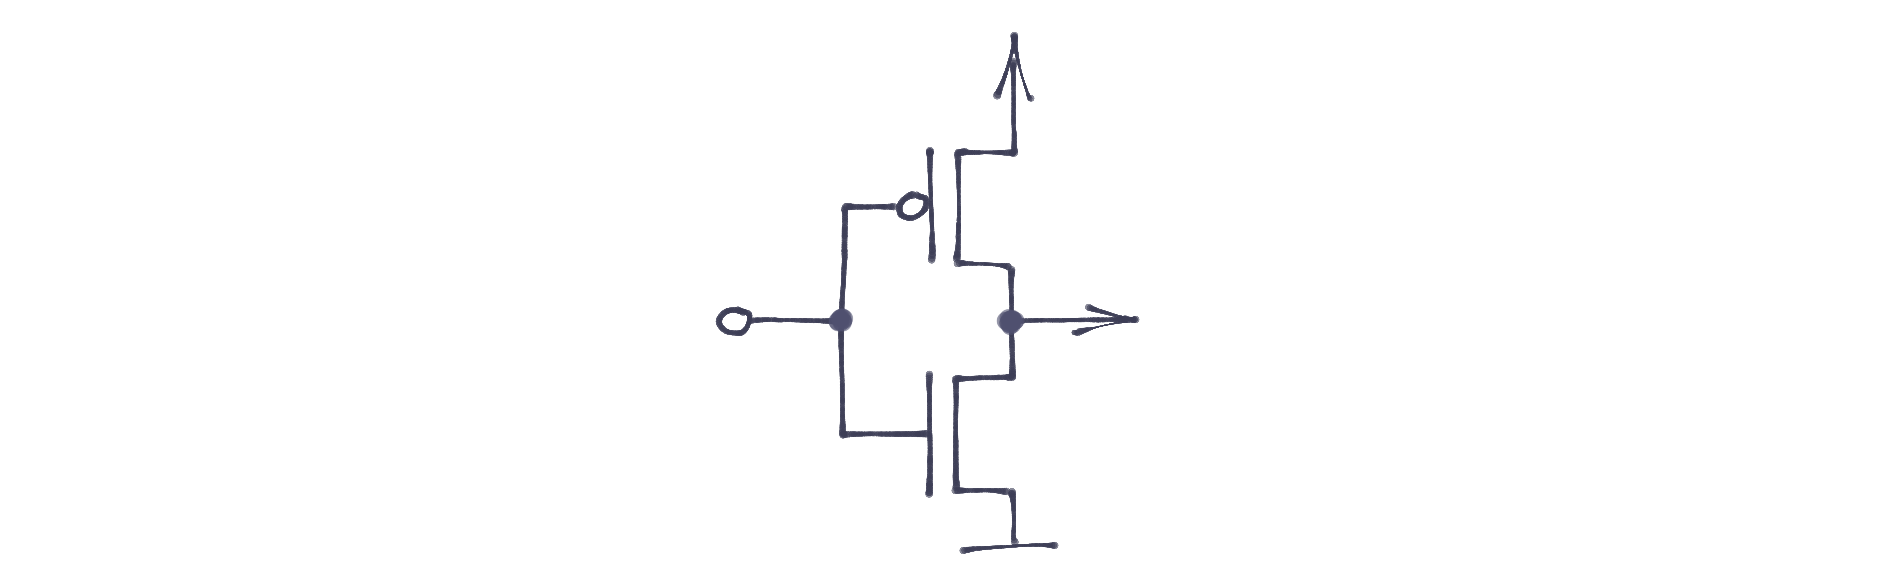 components_cmos-inverter.png